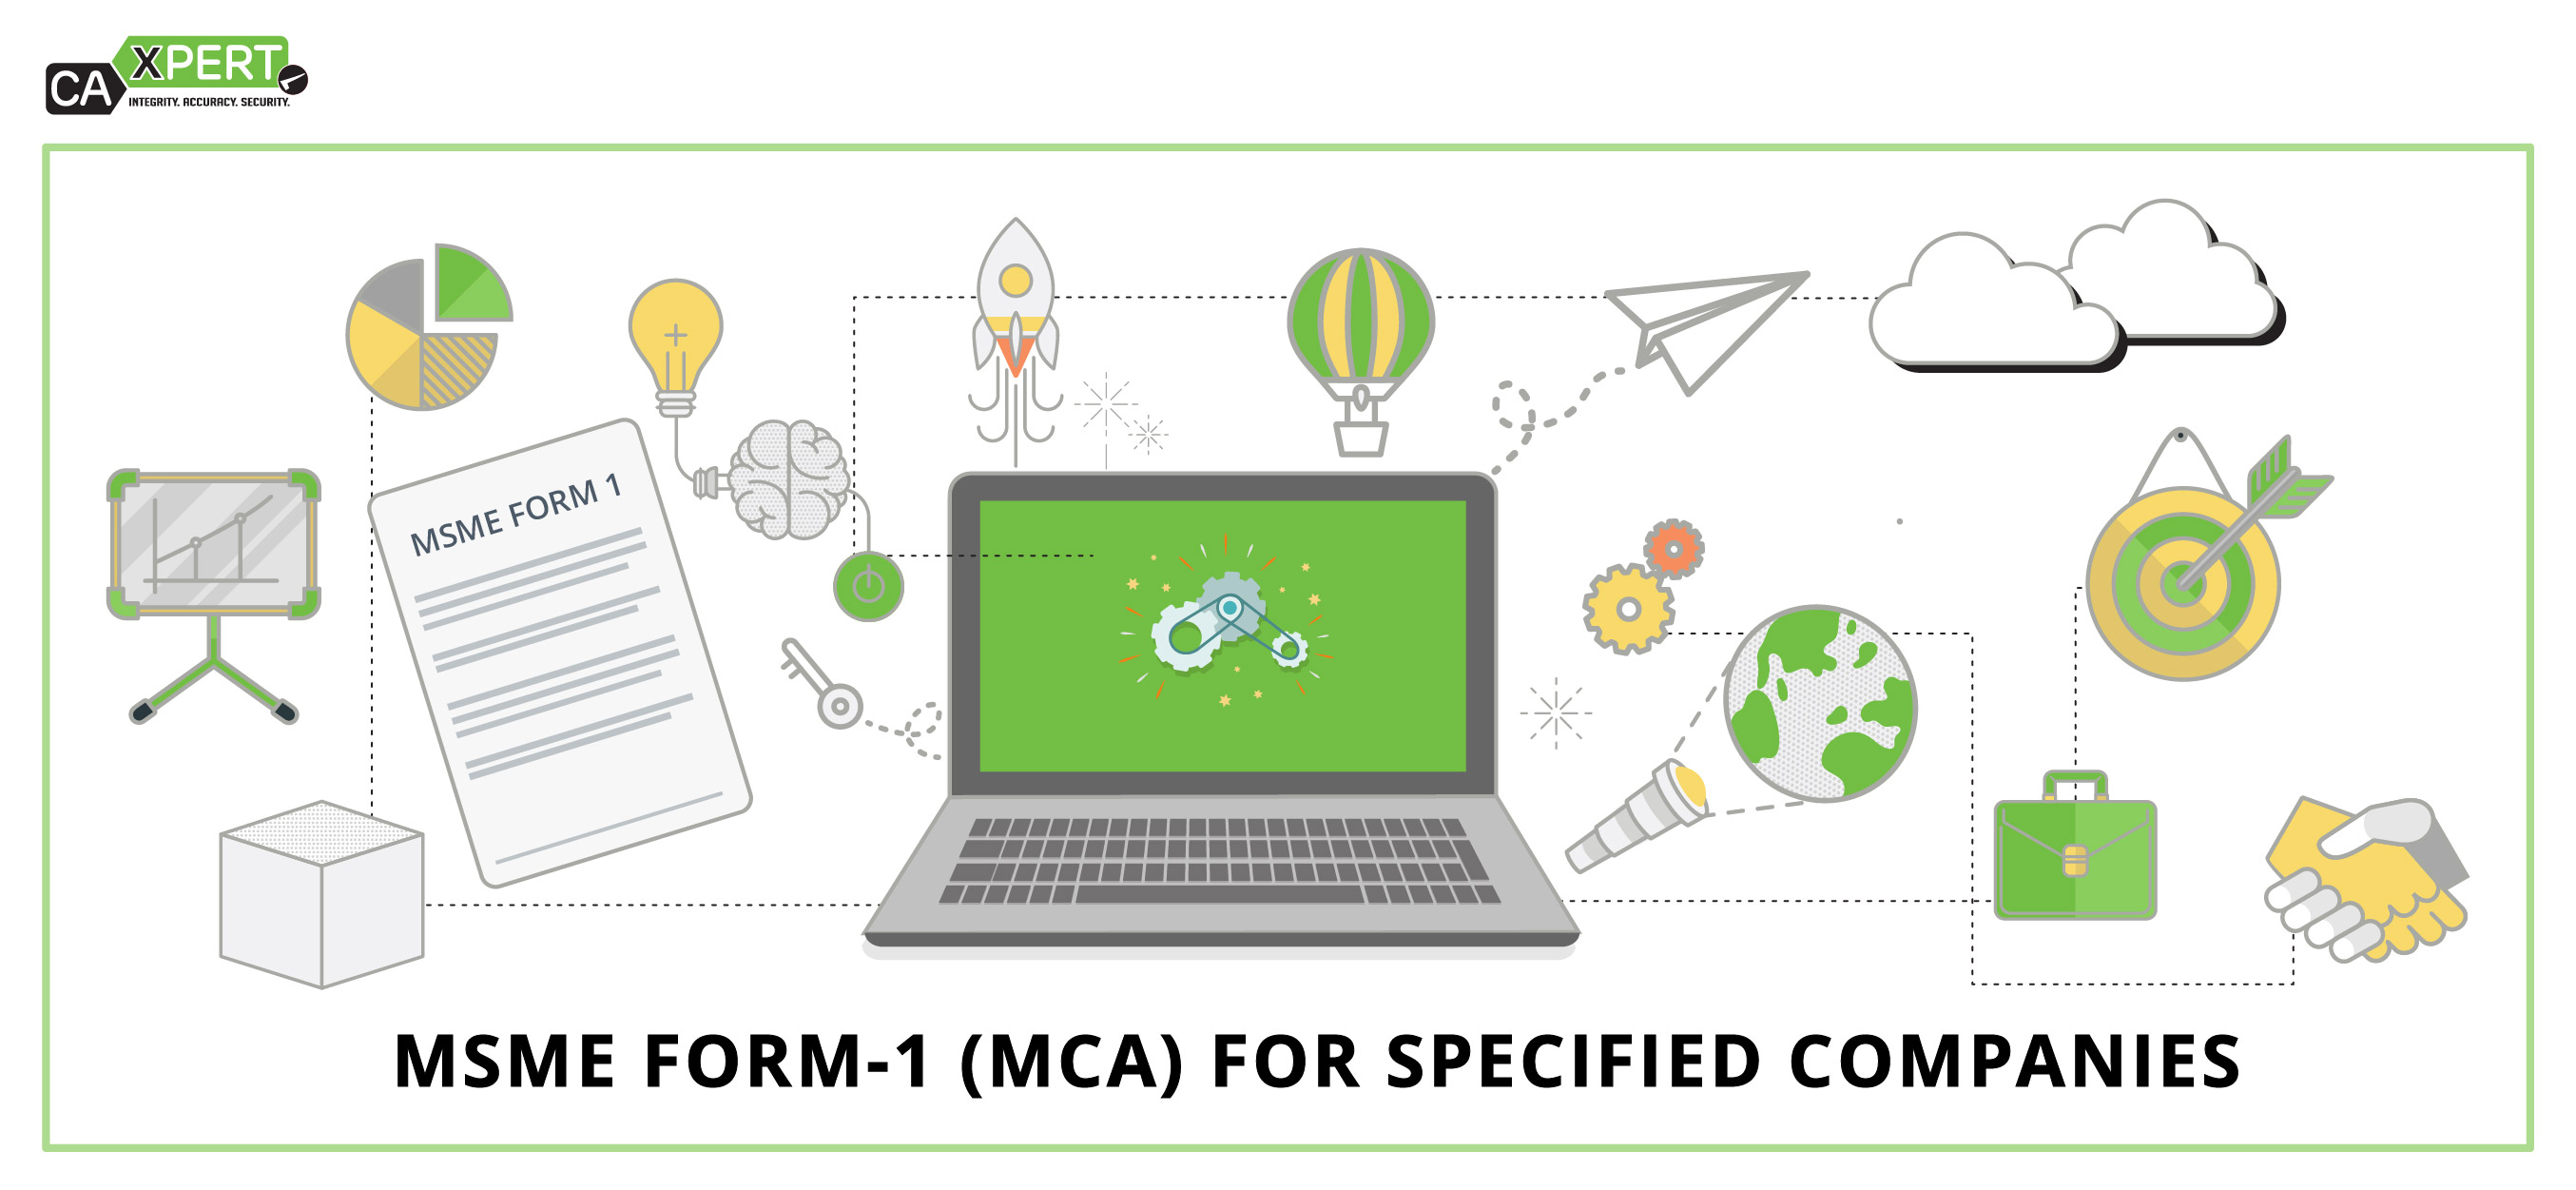 MSME FORM-1-MCA for SPECIFIED COMPANIES